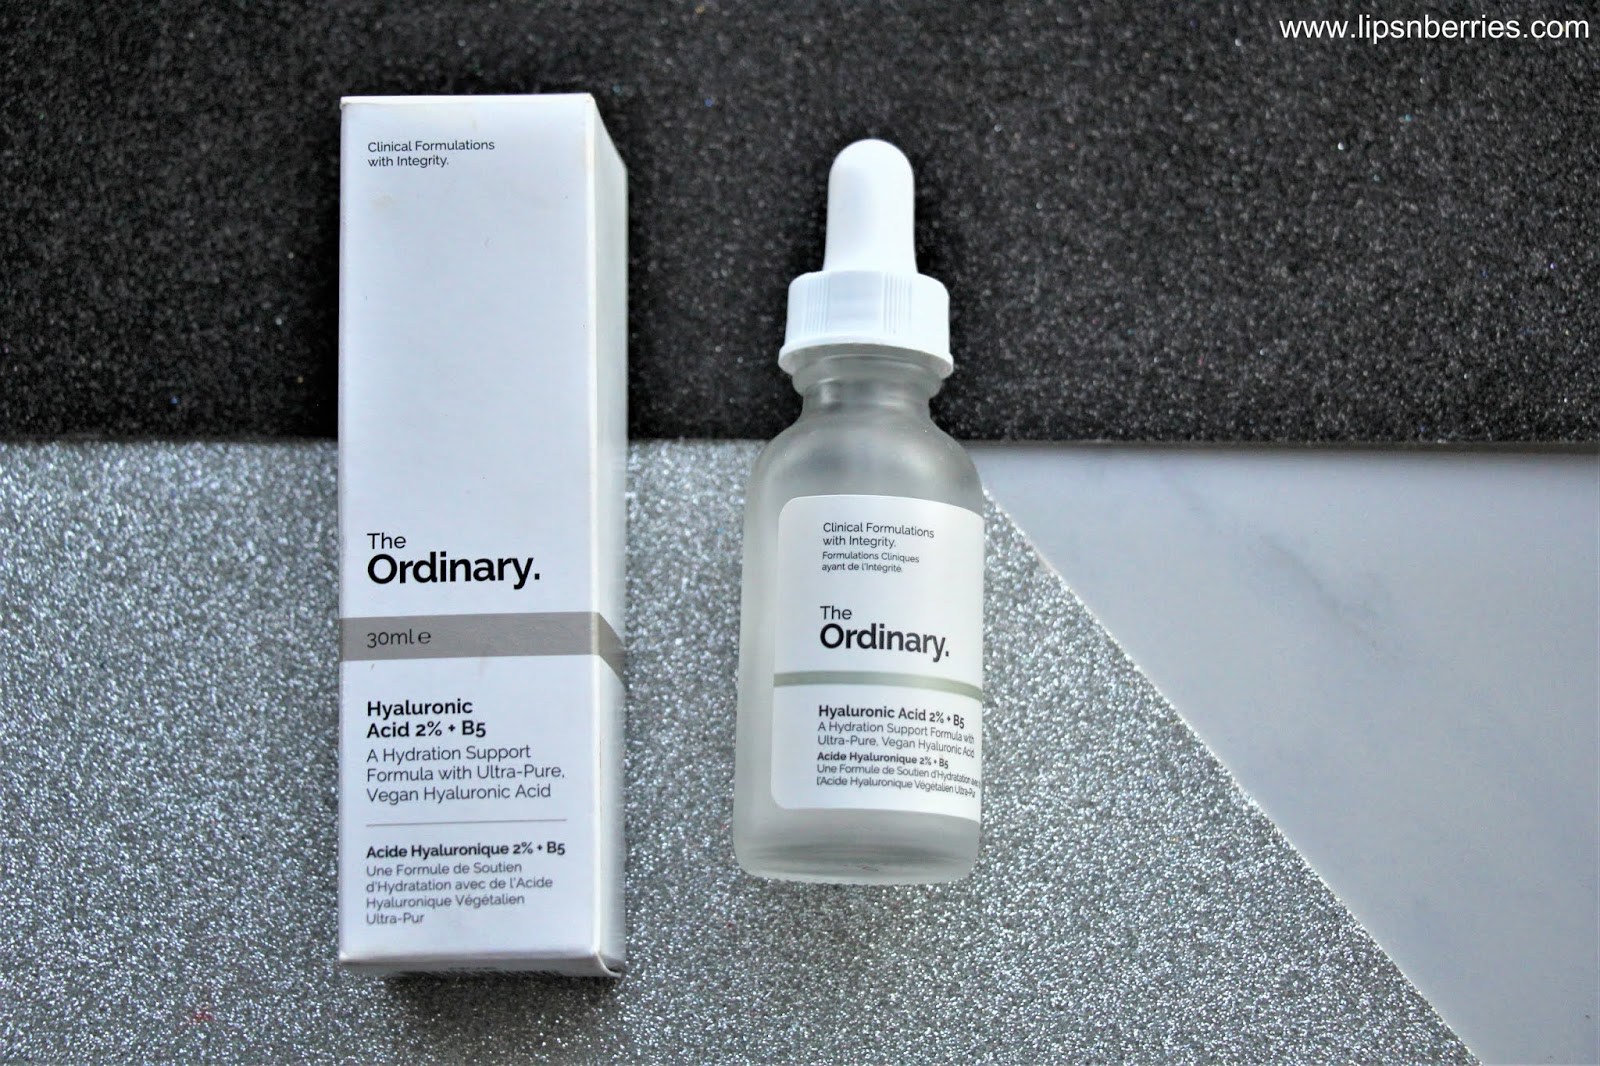 The Ordinary Hyaluronic Acid serum review